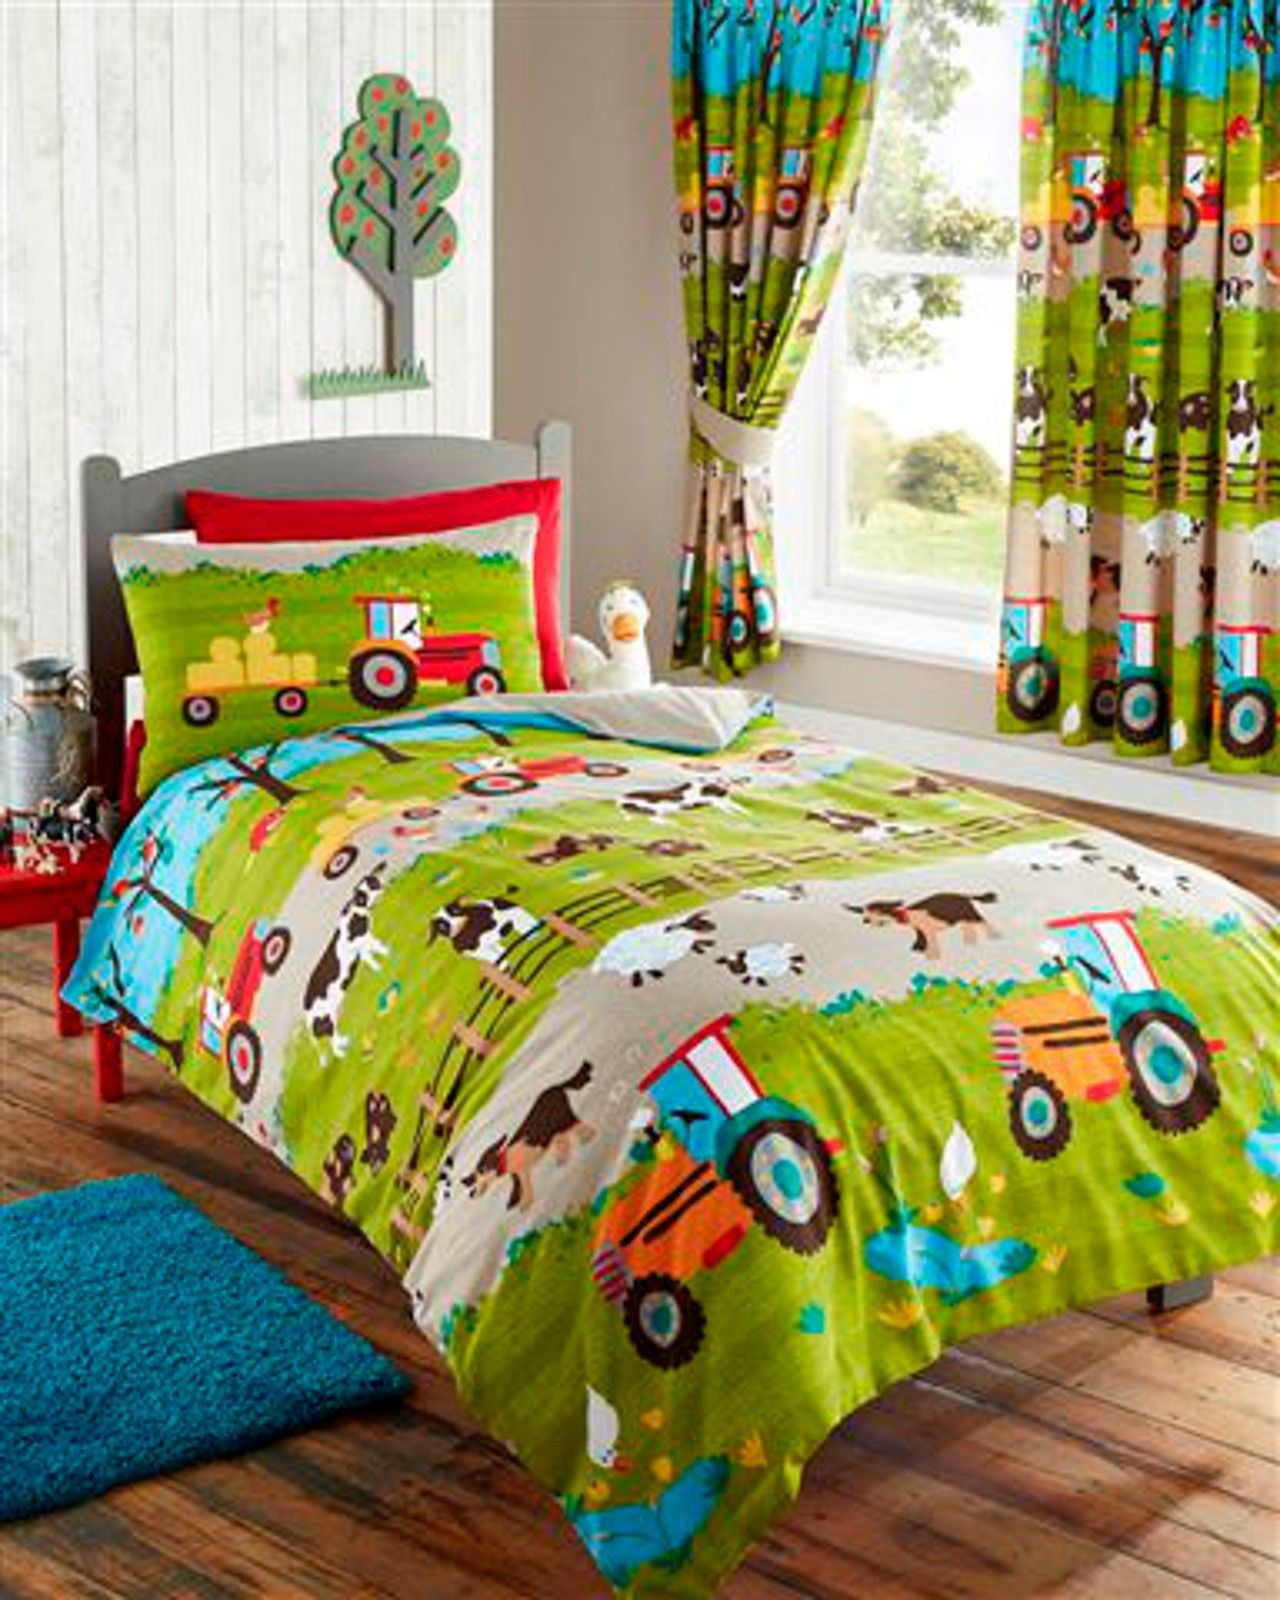 Sala Set Cover Where To Buy Farm Animals Tractor Kids Duvet Cover Or Matching Curtains